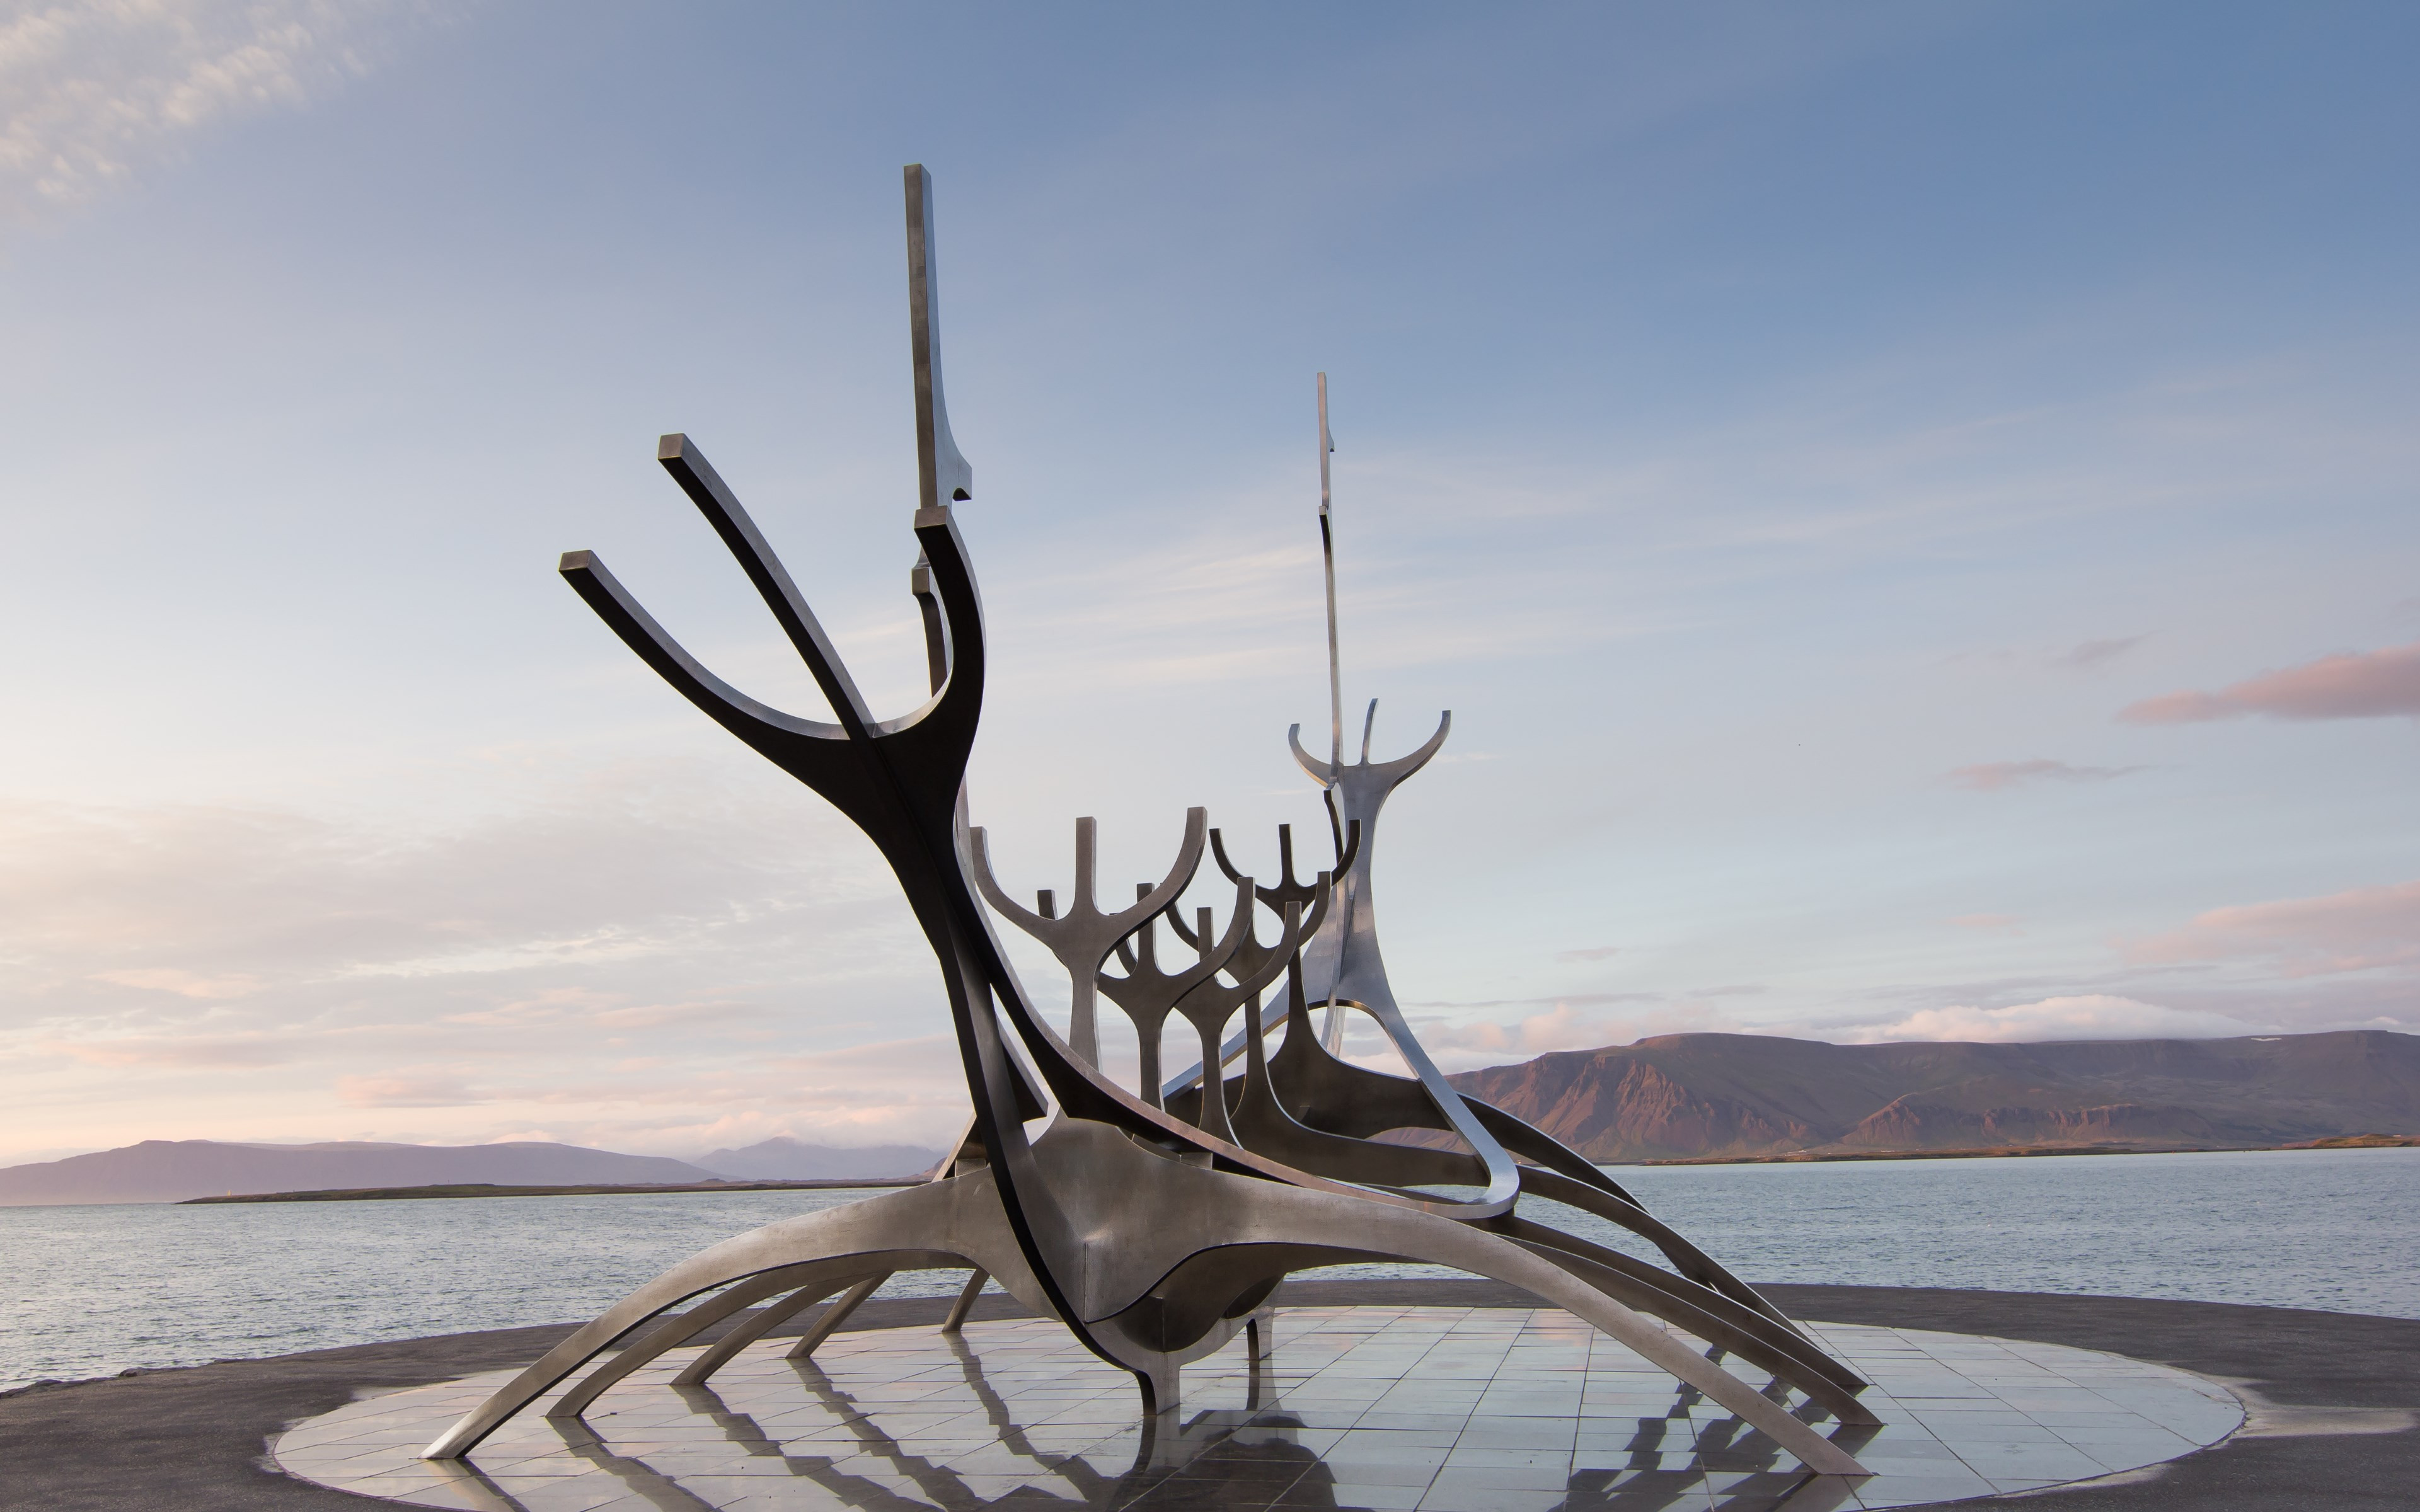 The Sun Voyager from Reykjavik, Iceland | 3840x2400 wallpaper